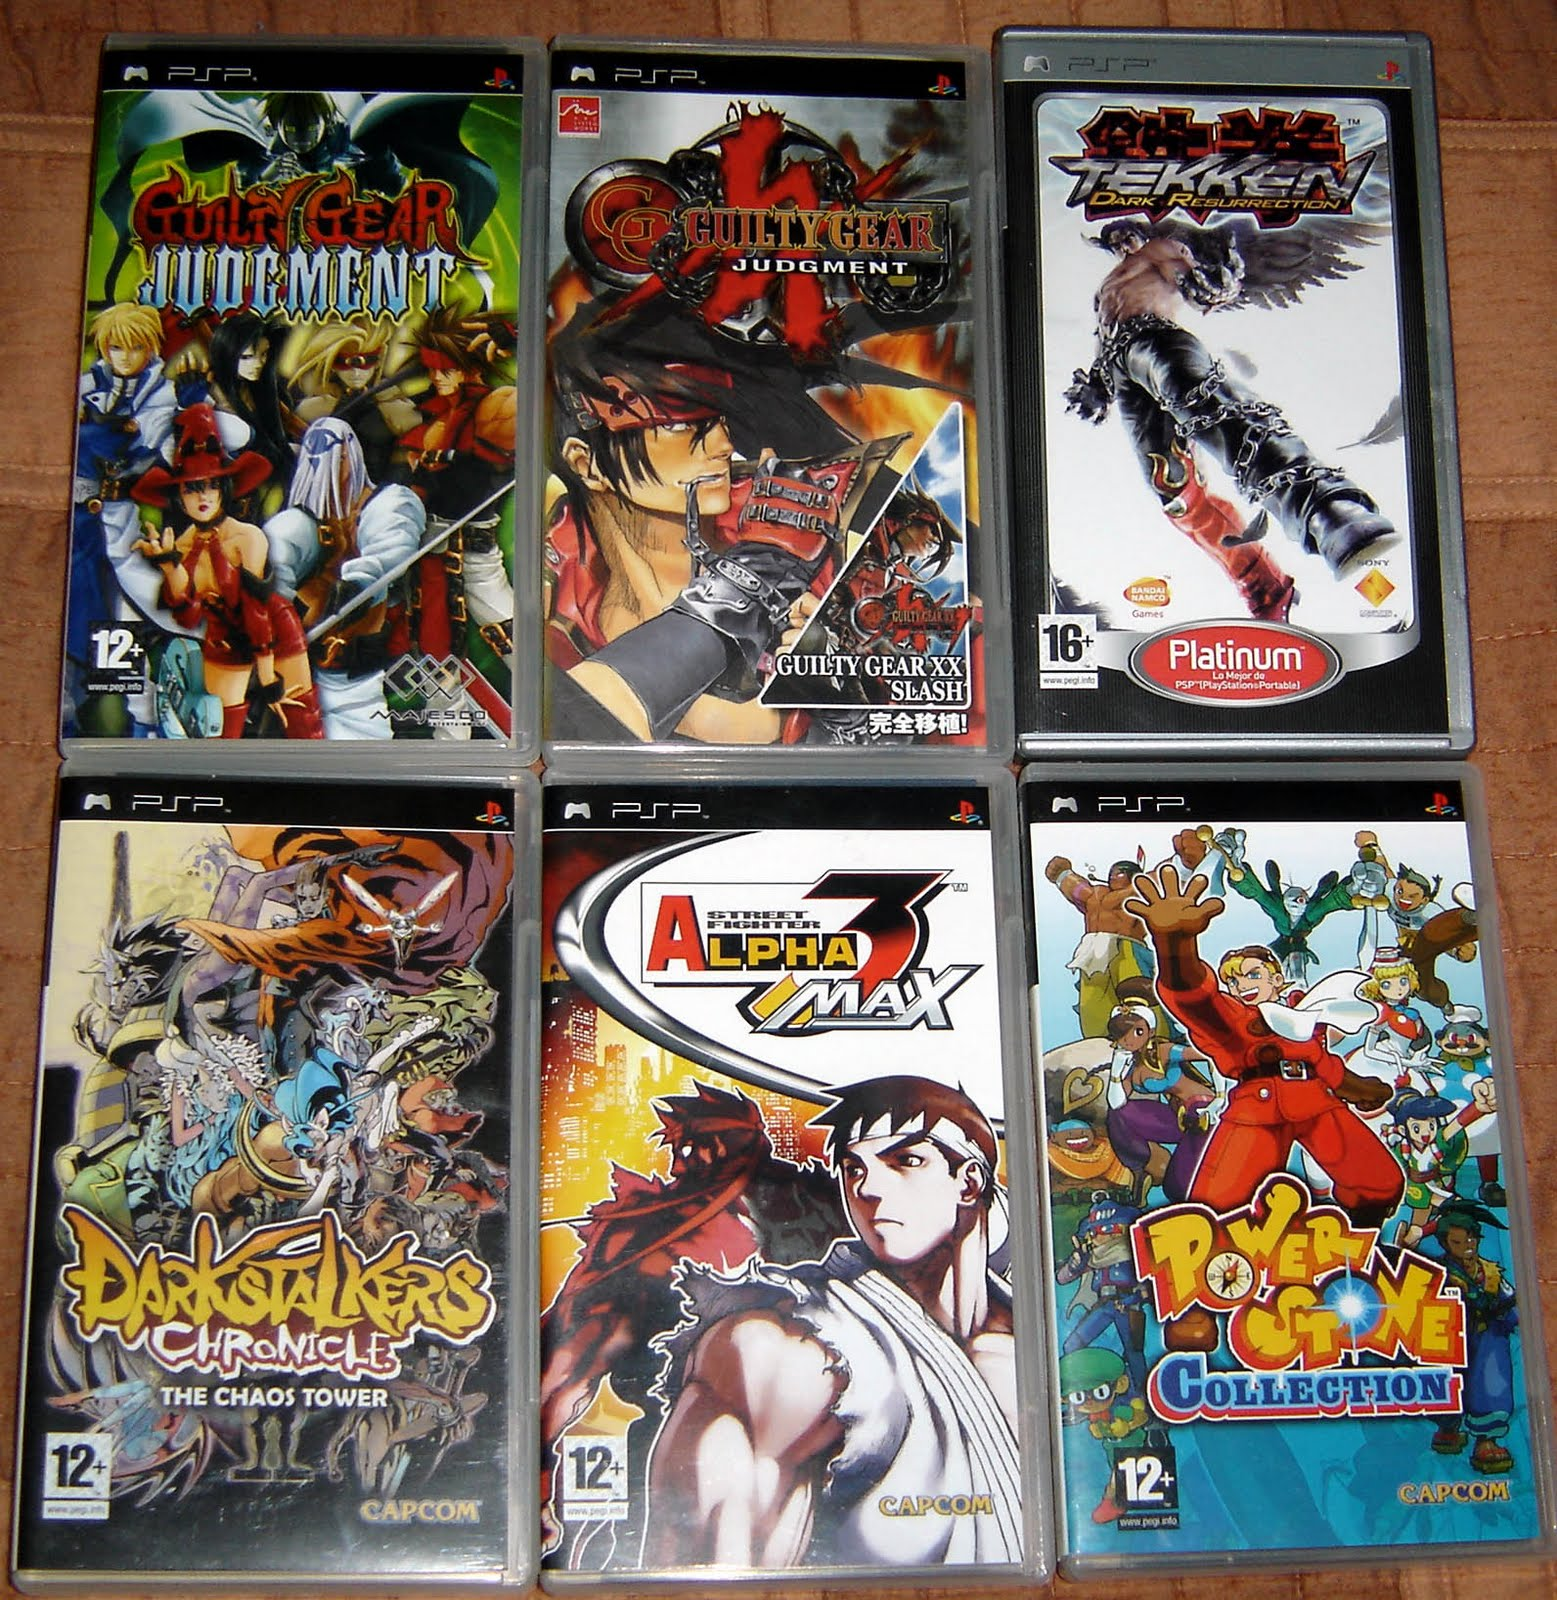 Soth's Blog: My videogame collection III: PlayStation Portable